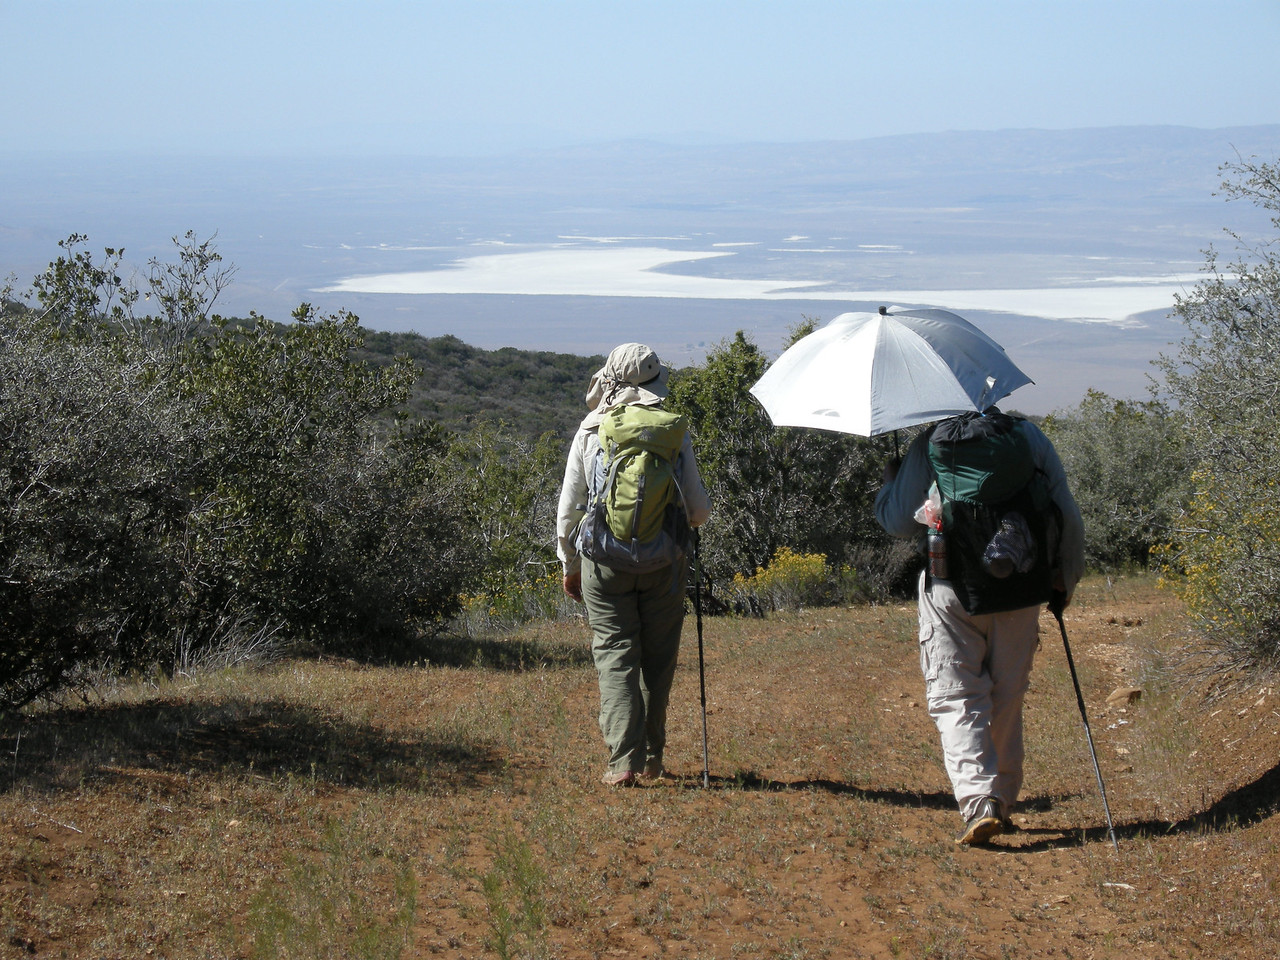 Getting near the end of the hike, with Sam taking his turn under the aluminized umbrella; it makes a substantial difference in how hot you get. Ahhh, cool shade! Soda Lake is in the background, and at this point we're about a mile from the trailhead and our car. A nice little hike!